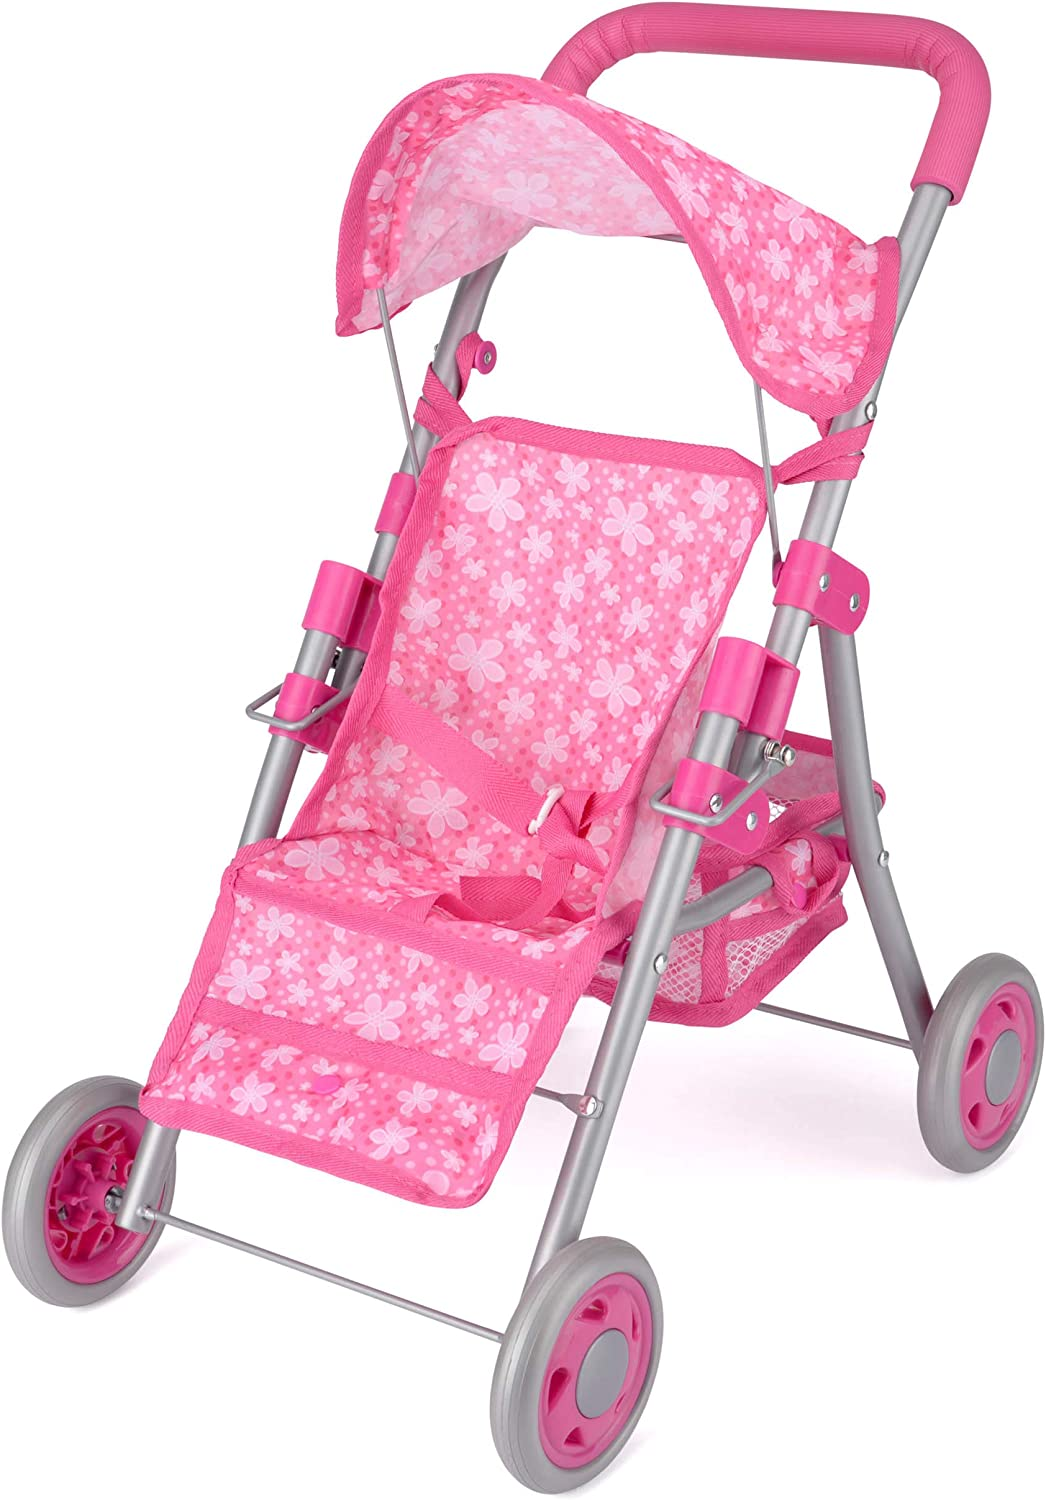 Collapsible Stroller for Kids Snuggles Deluxe Dolls Buggy